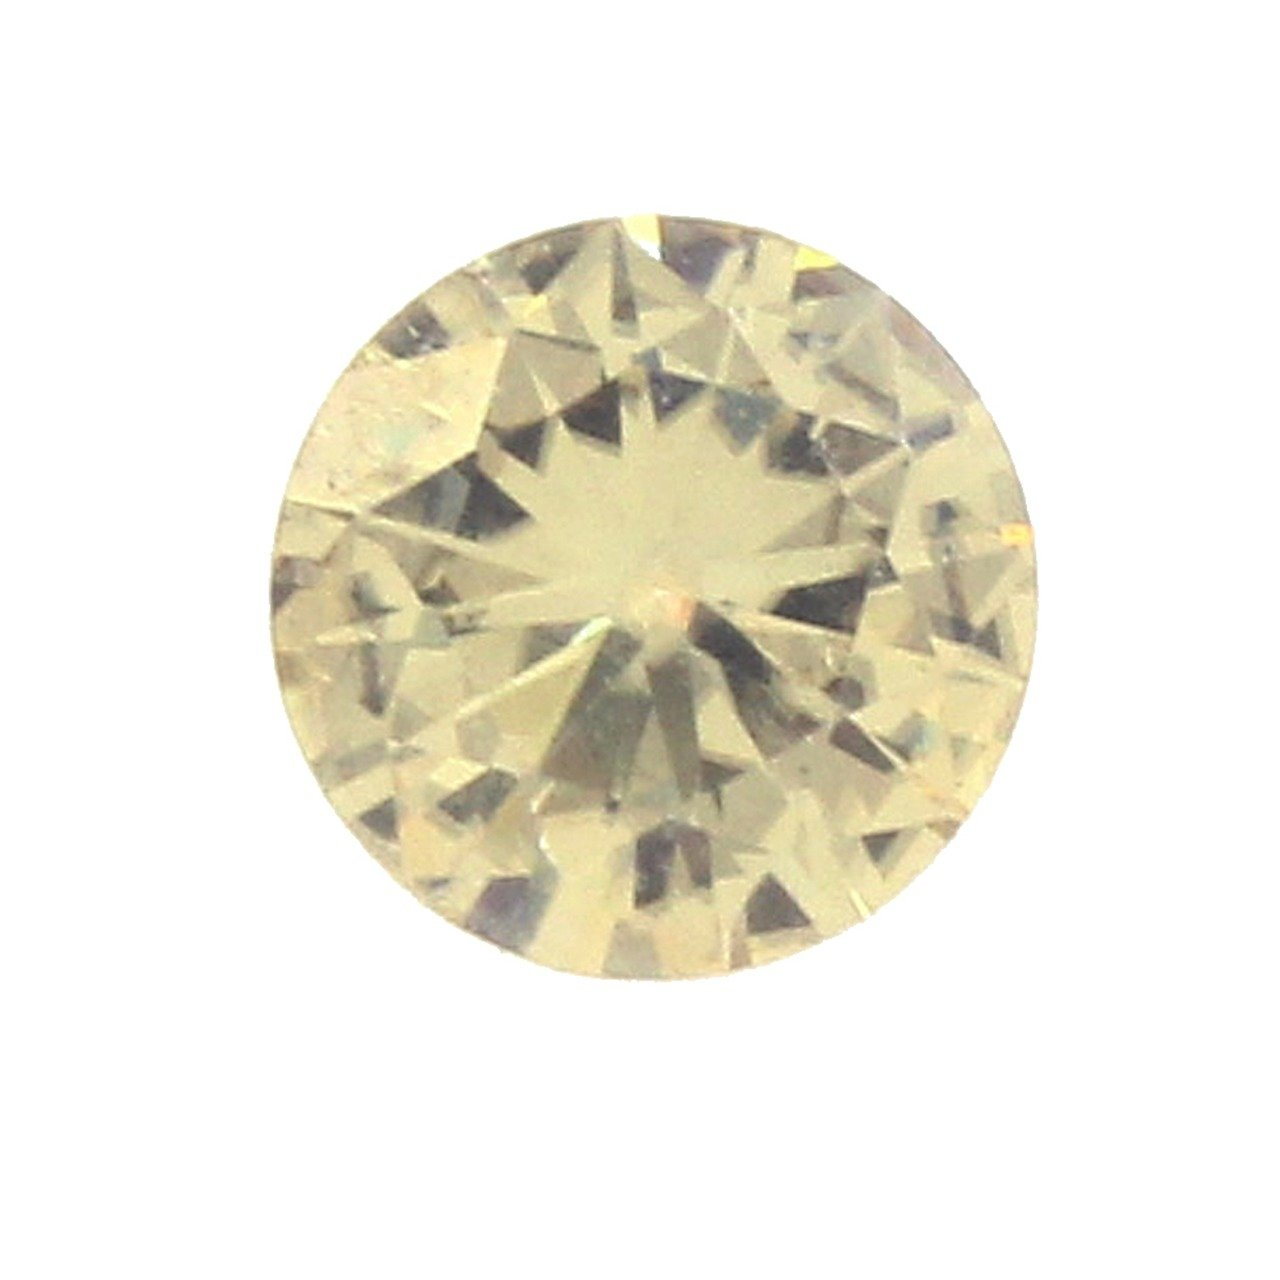 Loose Round Genuine Tested 6.75 mm Yellow Moissanite, 1 ct Diamond Equivalent Weight